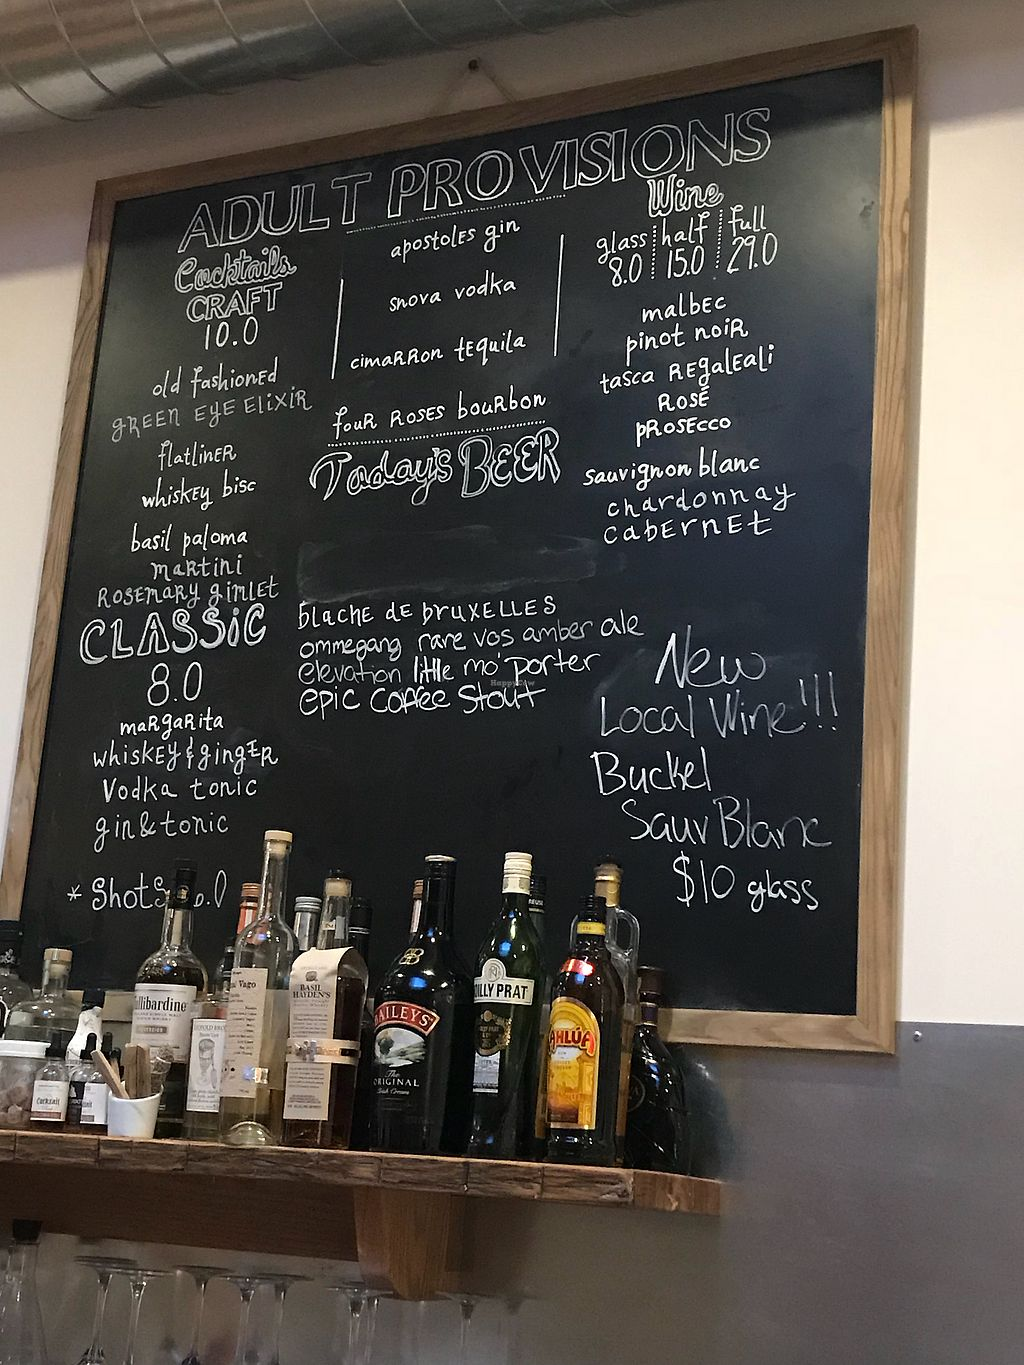 """Photo of Provisions at The Barbershop  by <a href=""""/members/profile/mountainfolk"""">mountainfolk</a> <br/>Drinks <br/> March 12, 2018  - <a href='/contact/abuse/image/113634/369964'>Report</a>"""